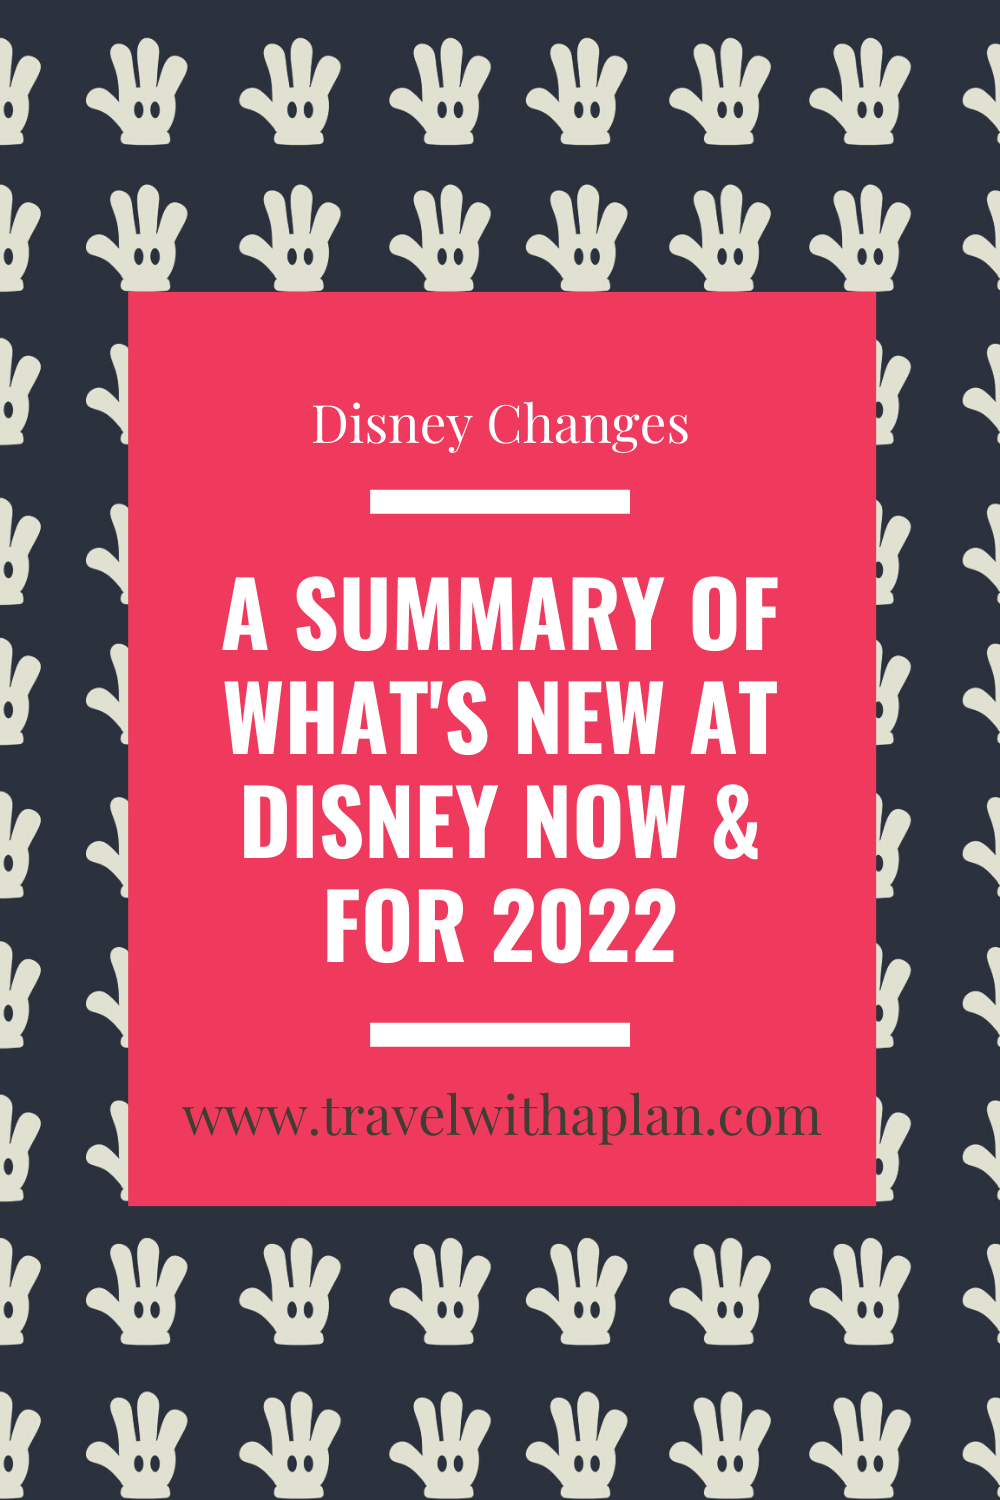 Read on for the Walt Disney World changes that you need to know about now, for 2022, and beyond from top U.S. family travel blog, Travel With A Plan.